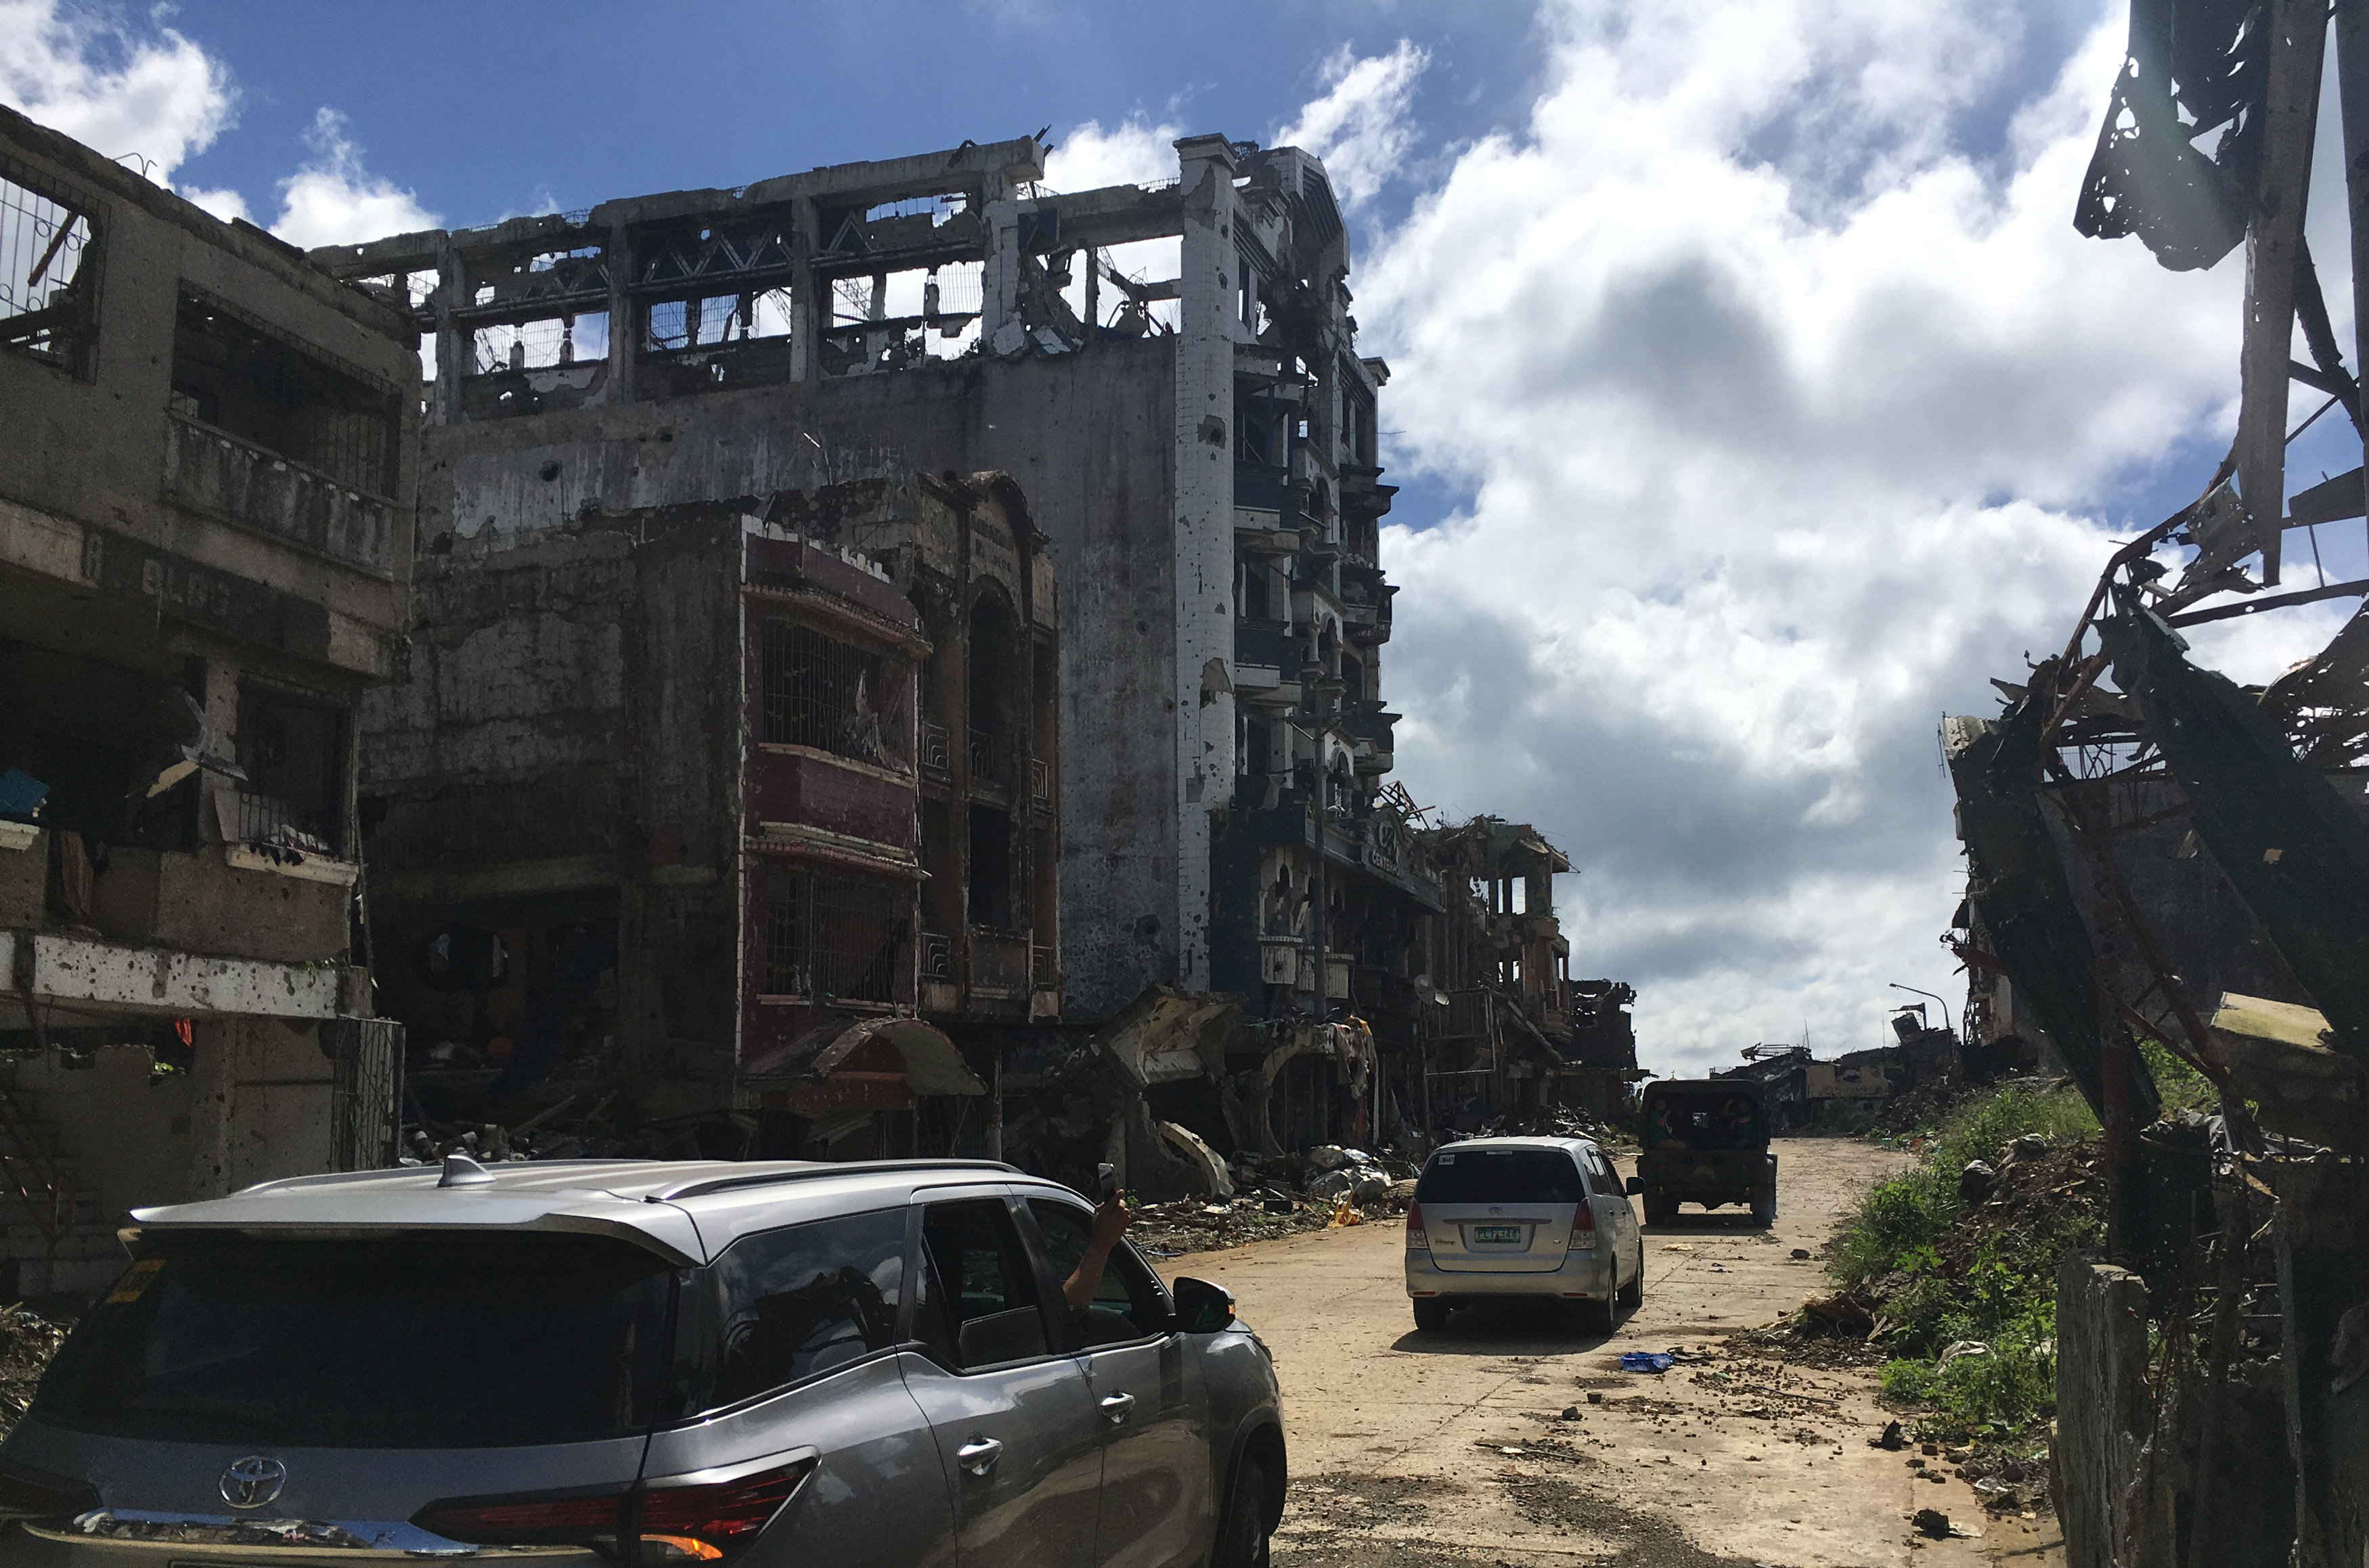 A view of the facade, of the battered Landbank building, looted by militants, in the early days of the Marawi siege, Philippines January 13, 2018.